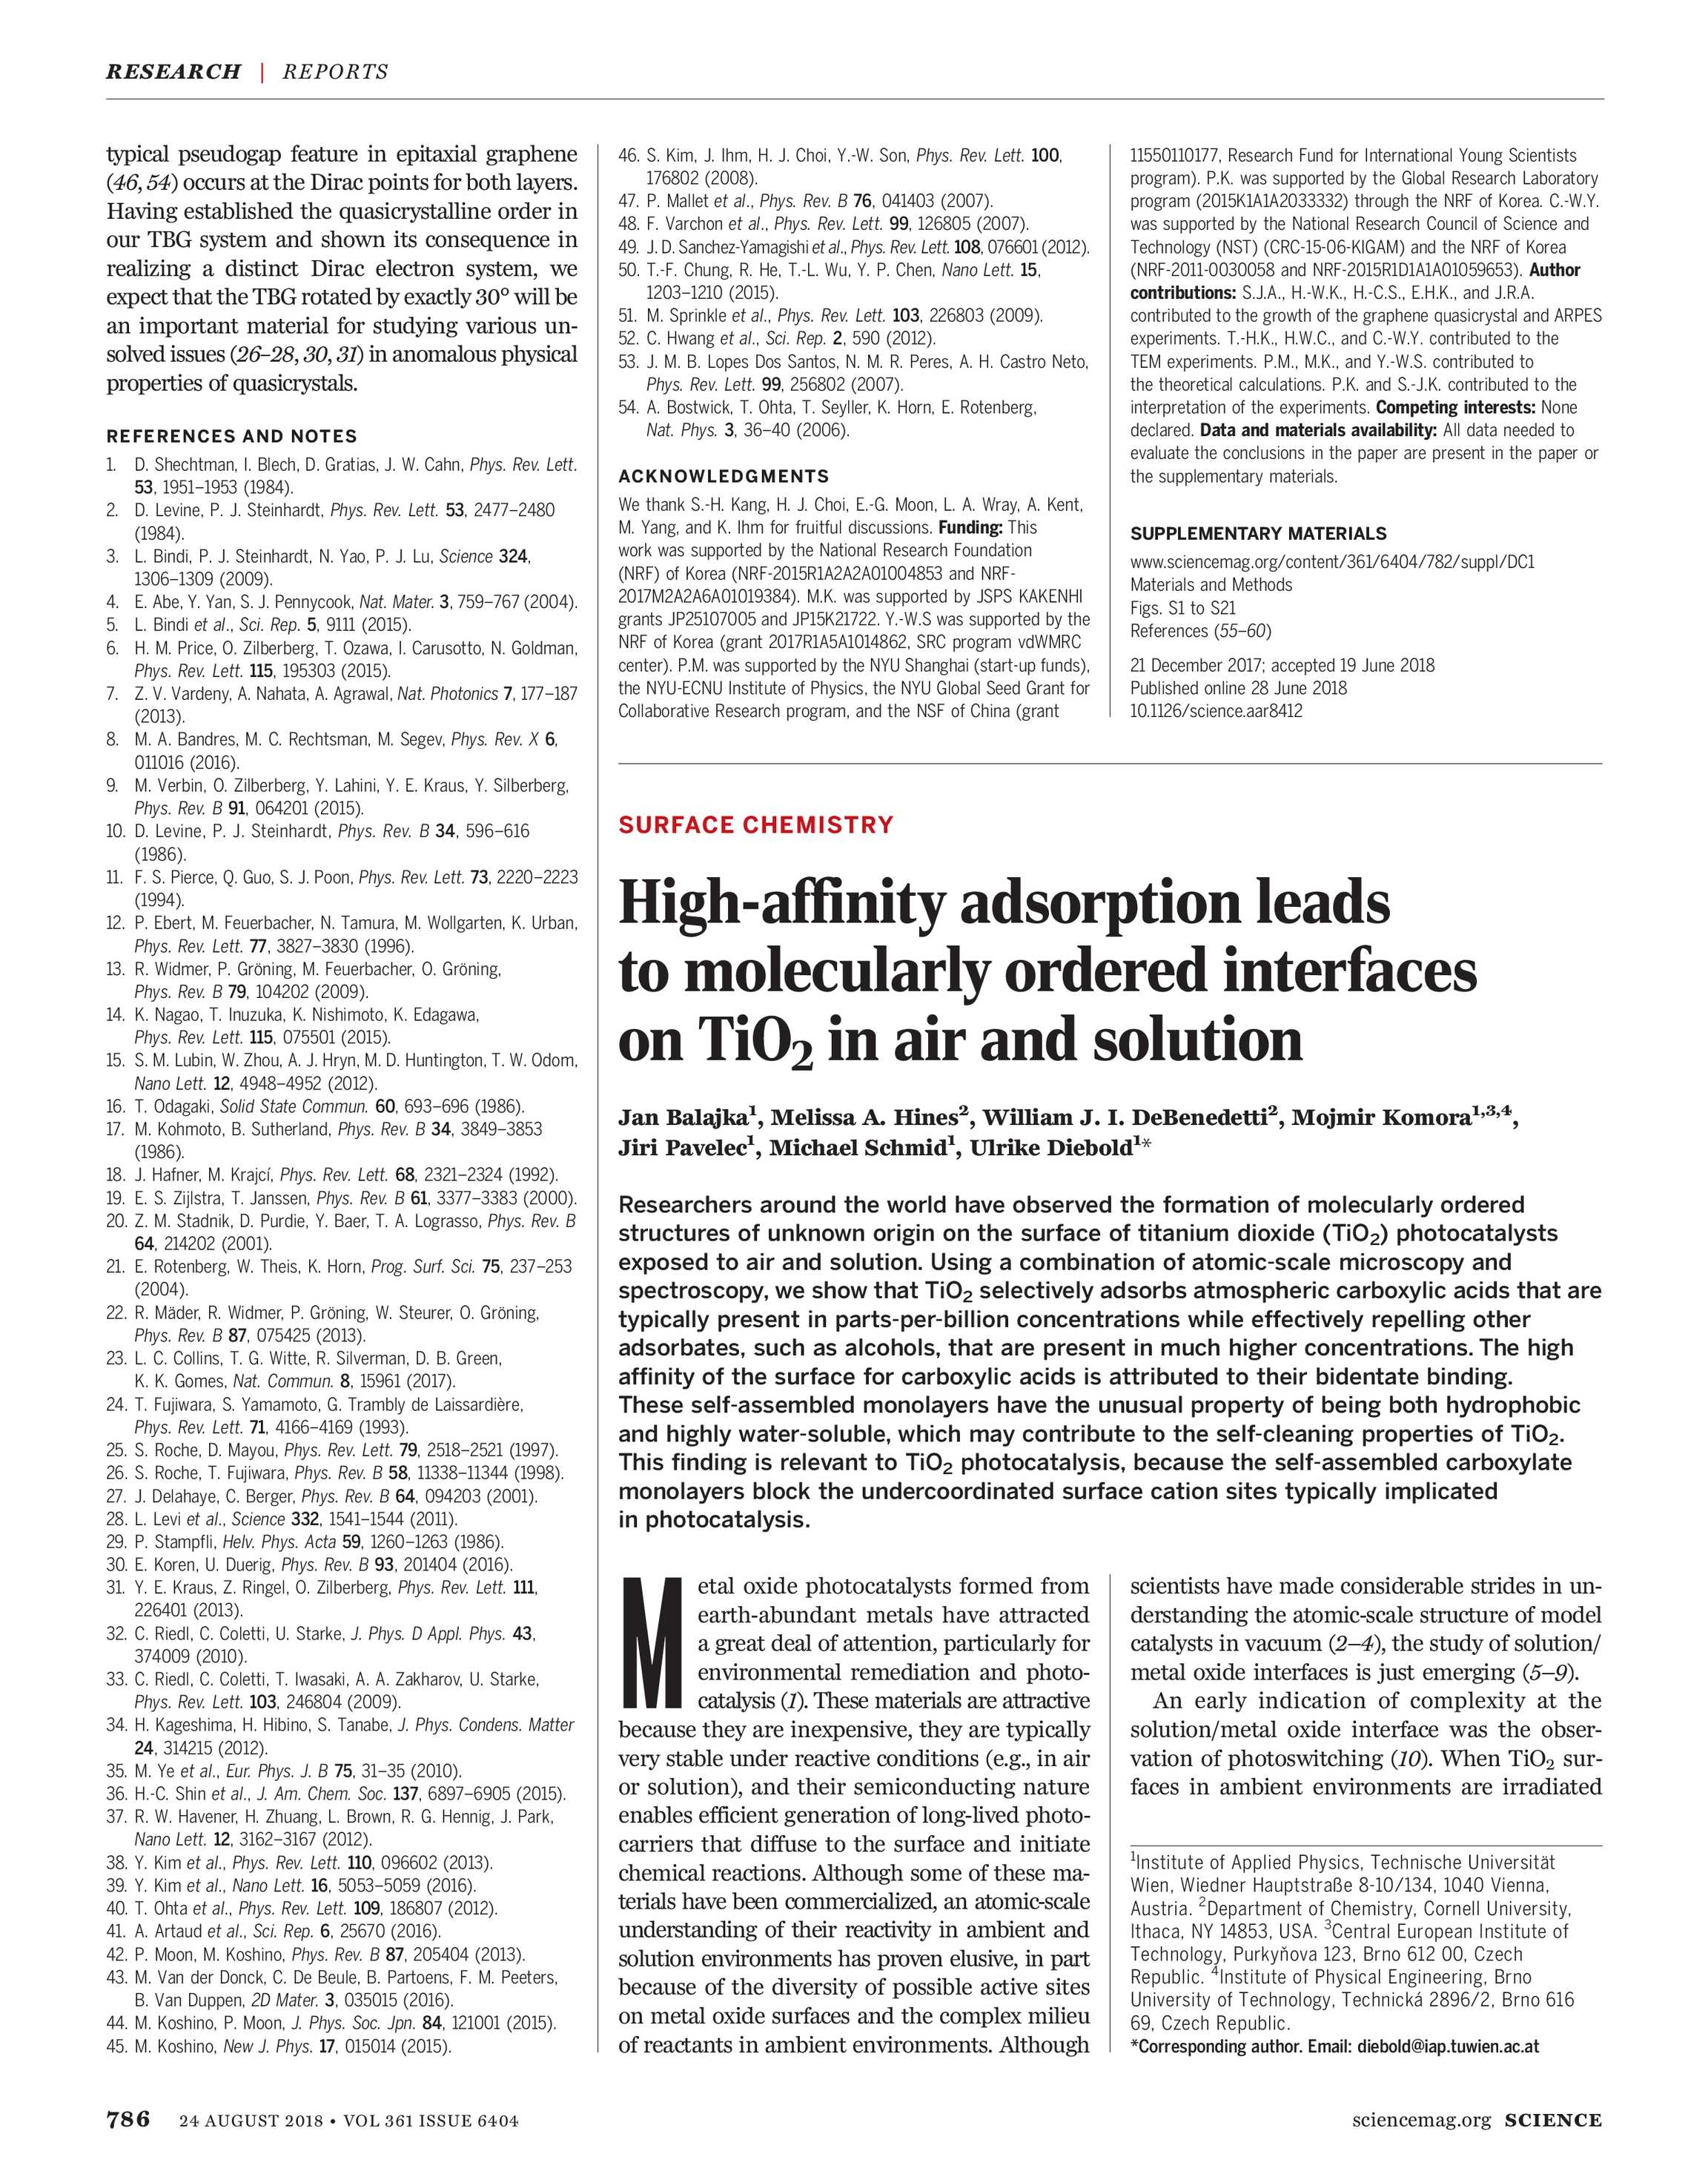 Science Magazine - August 24, 2018 - page 786